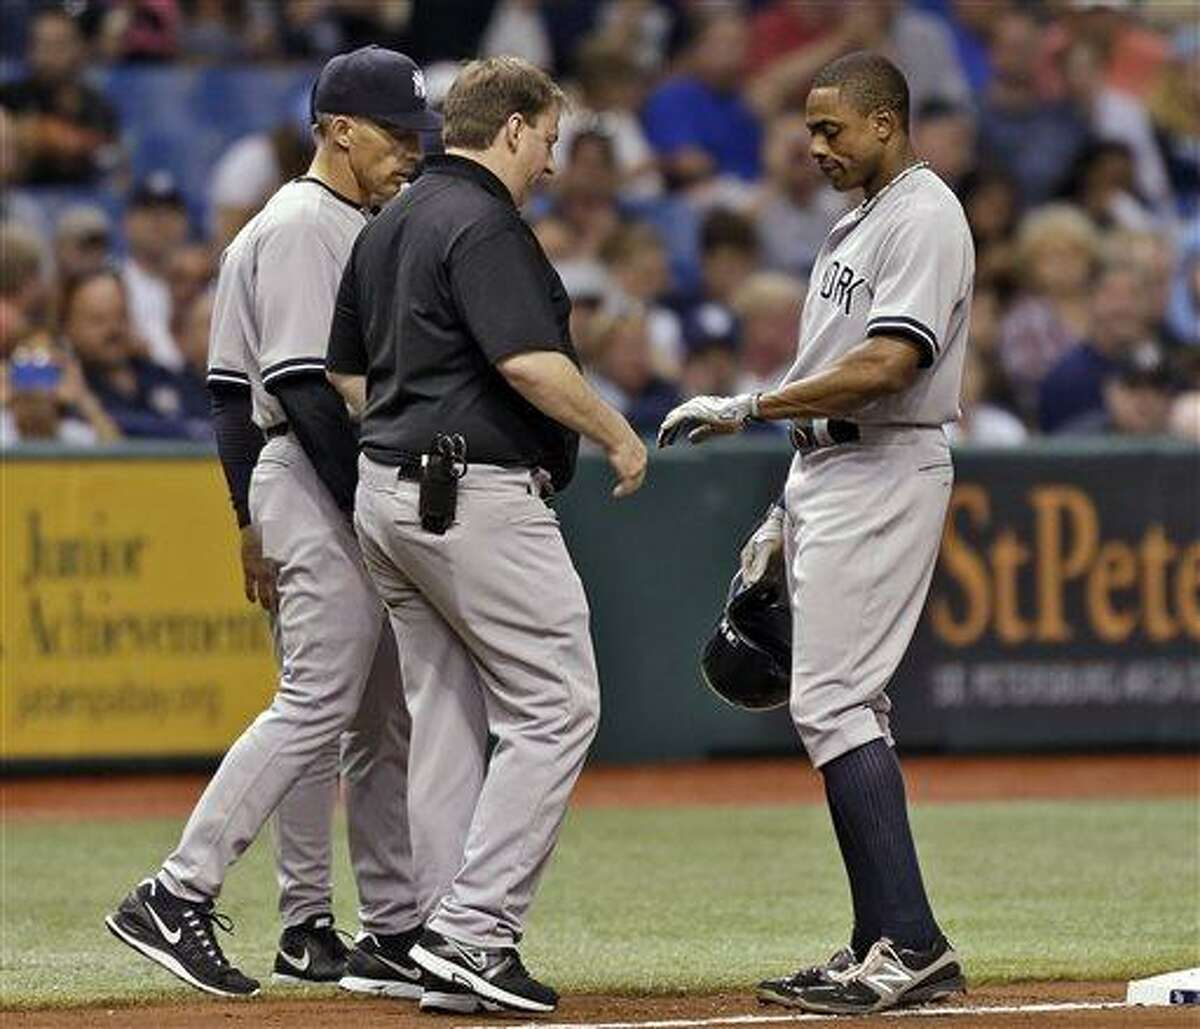 New York Yankees manager Joe Girardi, left, and a trainer look at Curtis Granderson's wrist during the fifth inning of a baseball game against the Tampa Bay Rays ,Friday, May 24, 2013, in St. Petersburg, Fla. (AP Photo/Chris O'Meara)